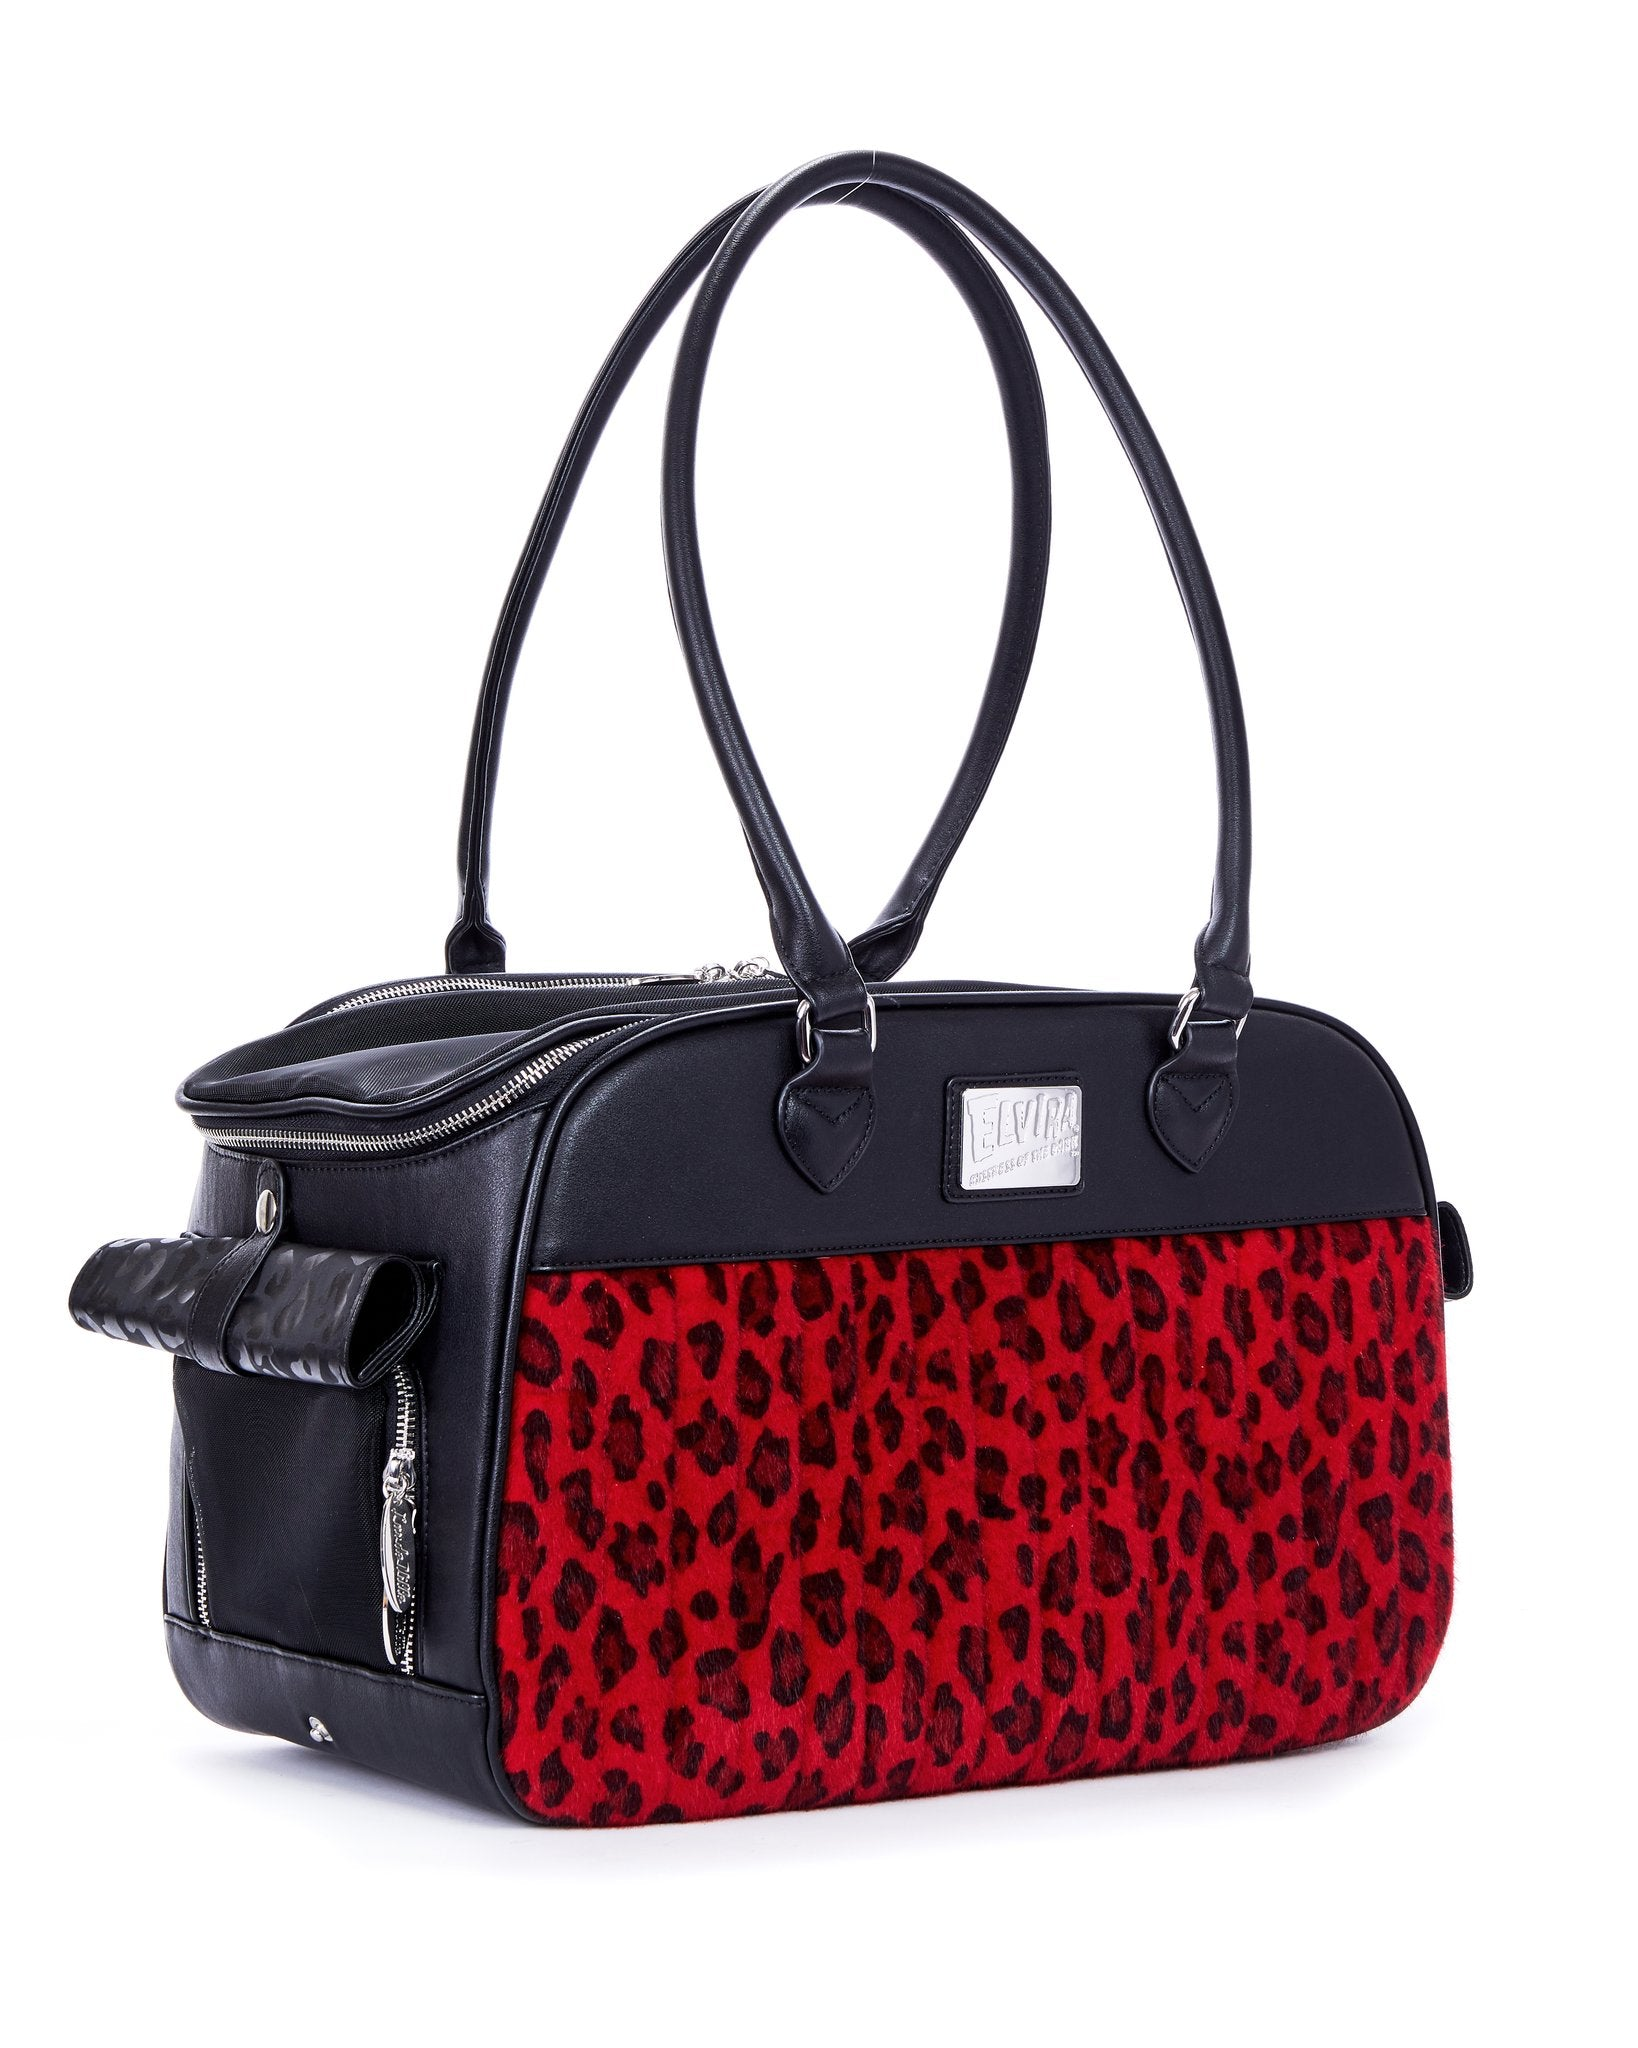 The Elvira Lux Pet Carrier - BLACK MATTE/RED LEOPARD